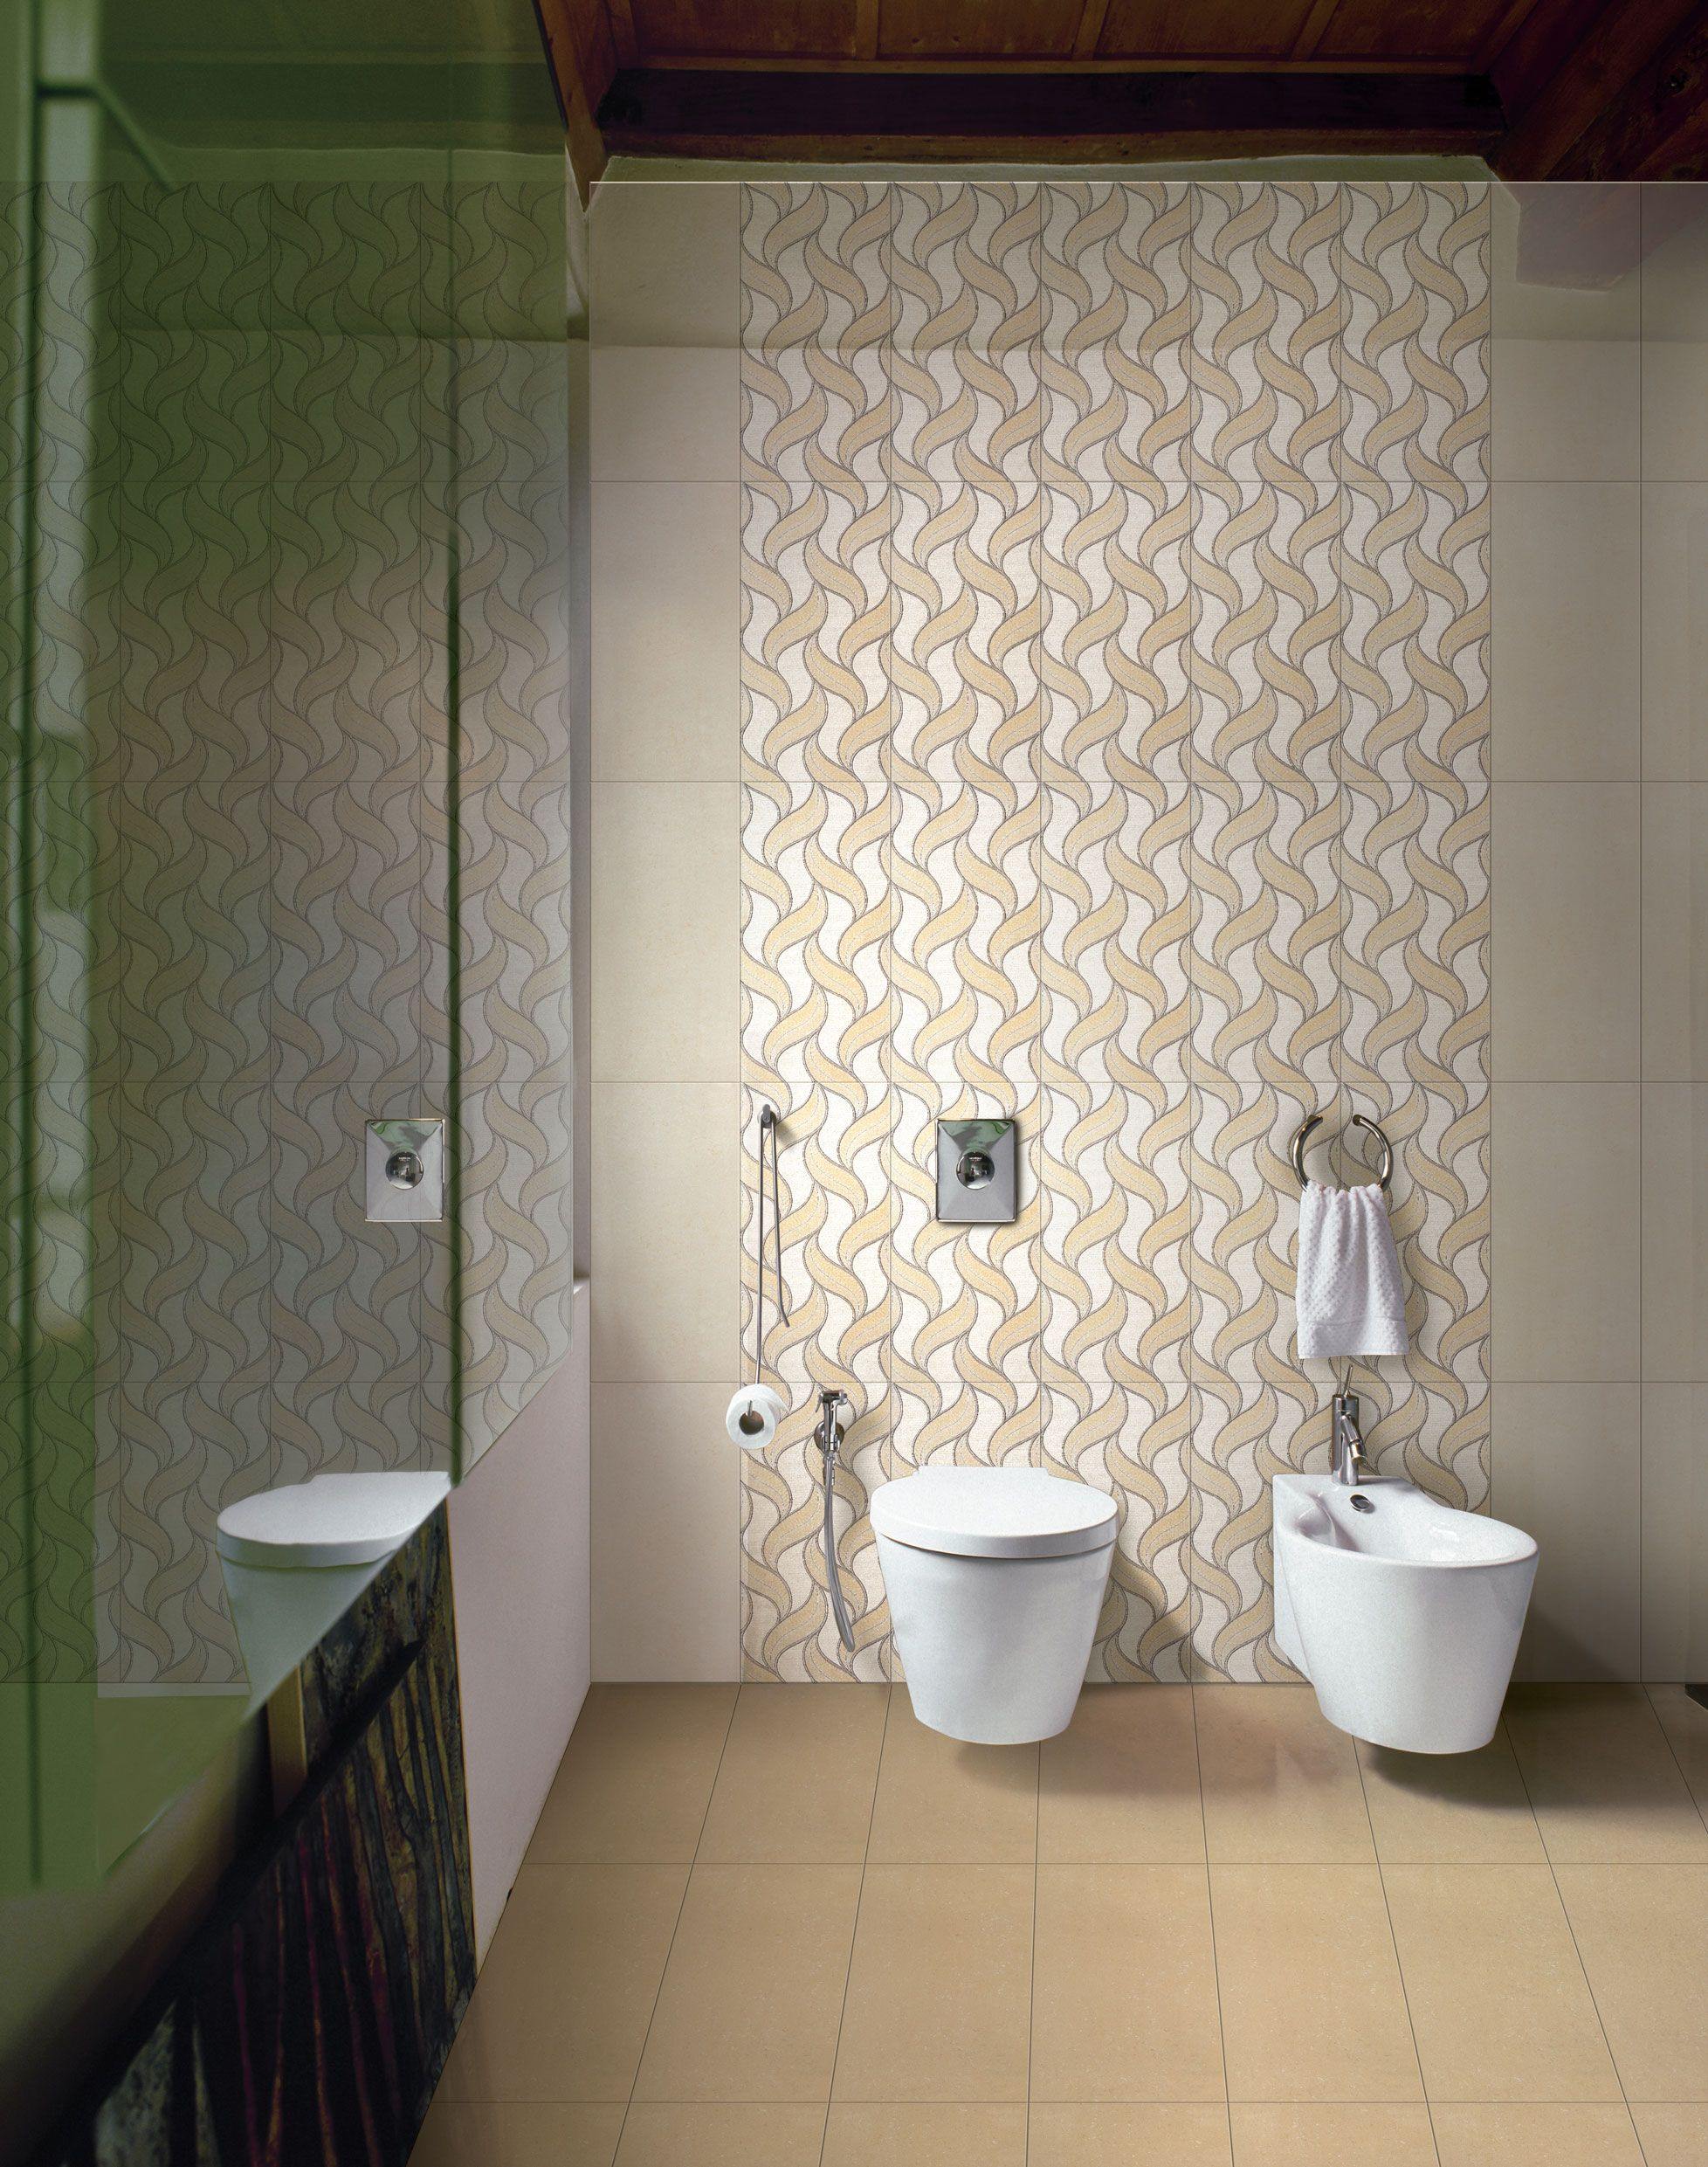 Buy Designer Floor, Wall Tiles for Bathroom, Bedroom